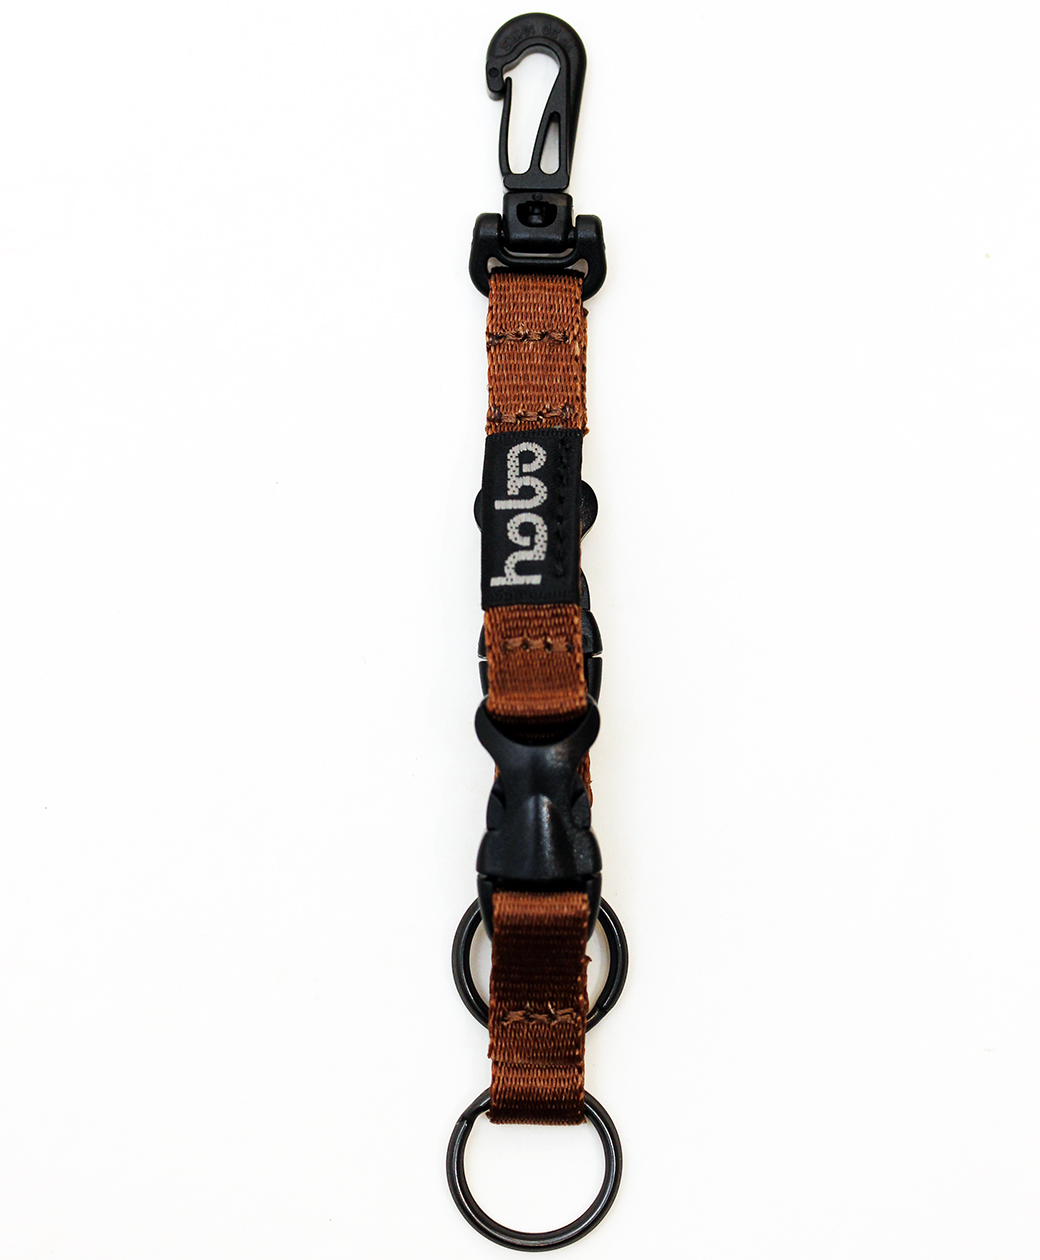 hobo NYLON TAPE KEY RING with DOUBLE BUCKLE RELEASE(BROWN)